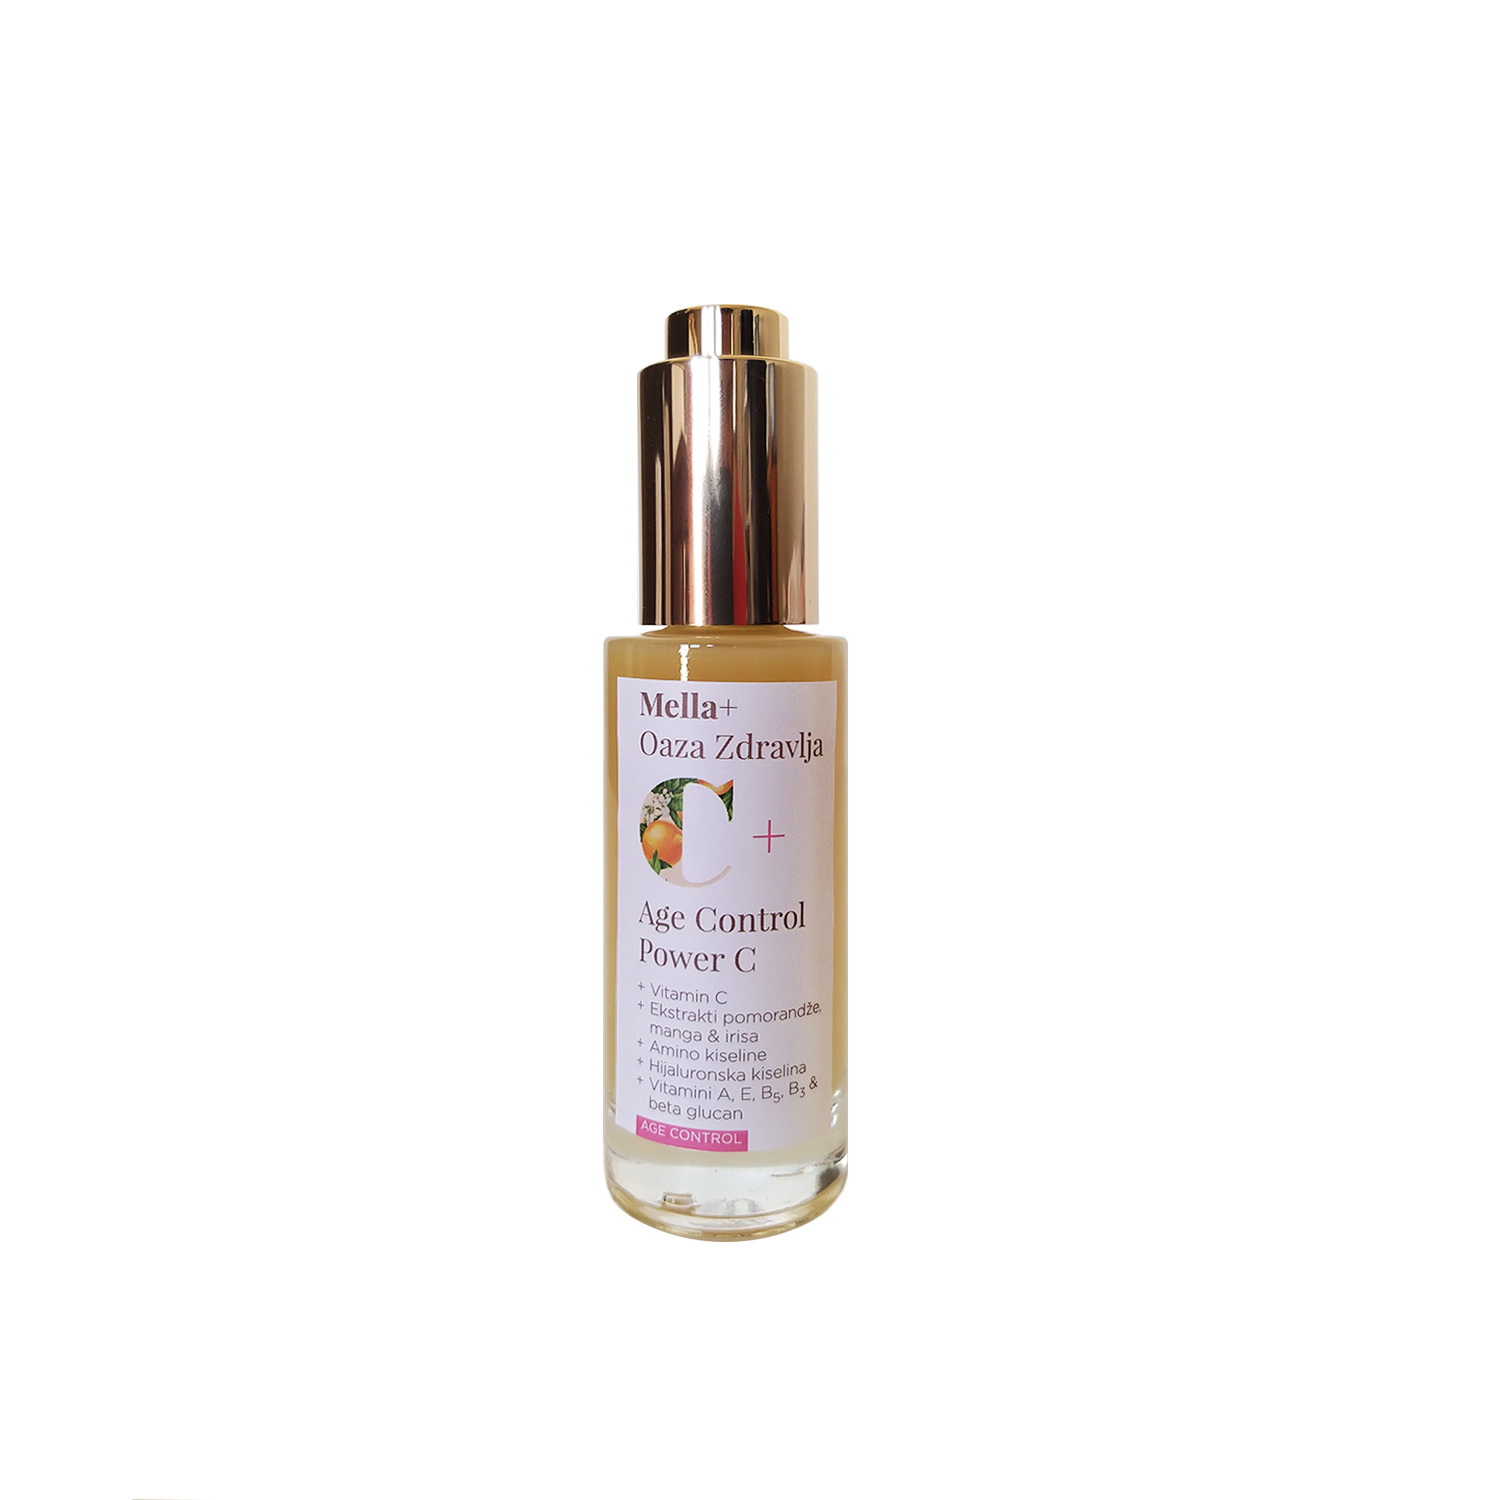 MELLA+ AGE CONTROL POWER C SERUM SPF20 30ML